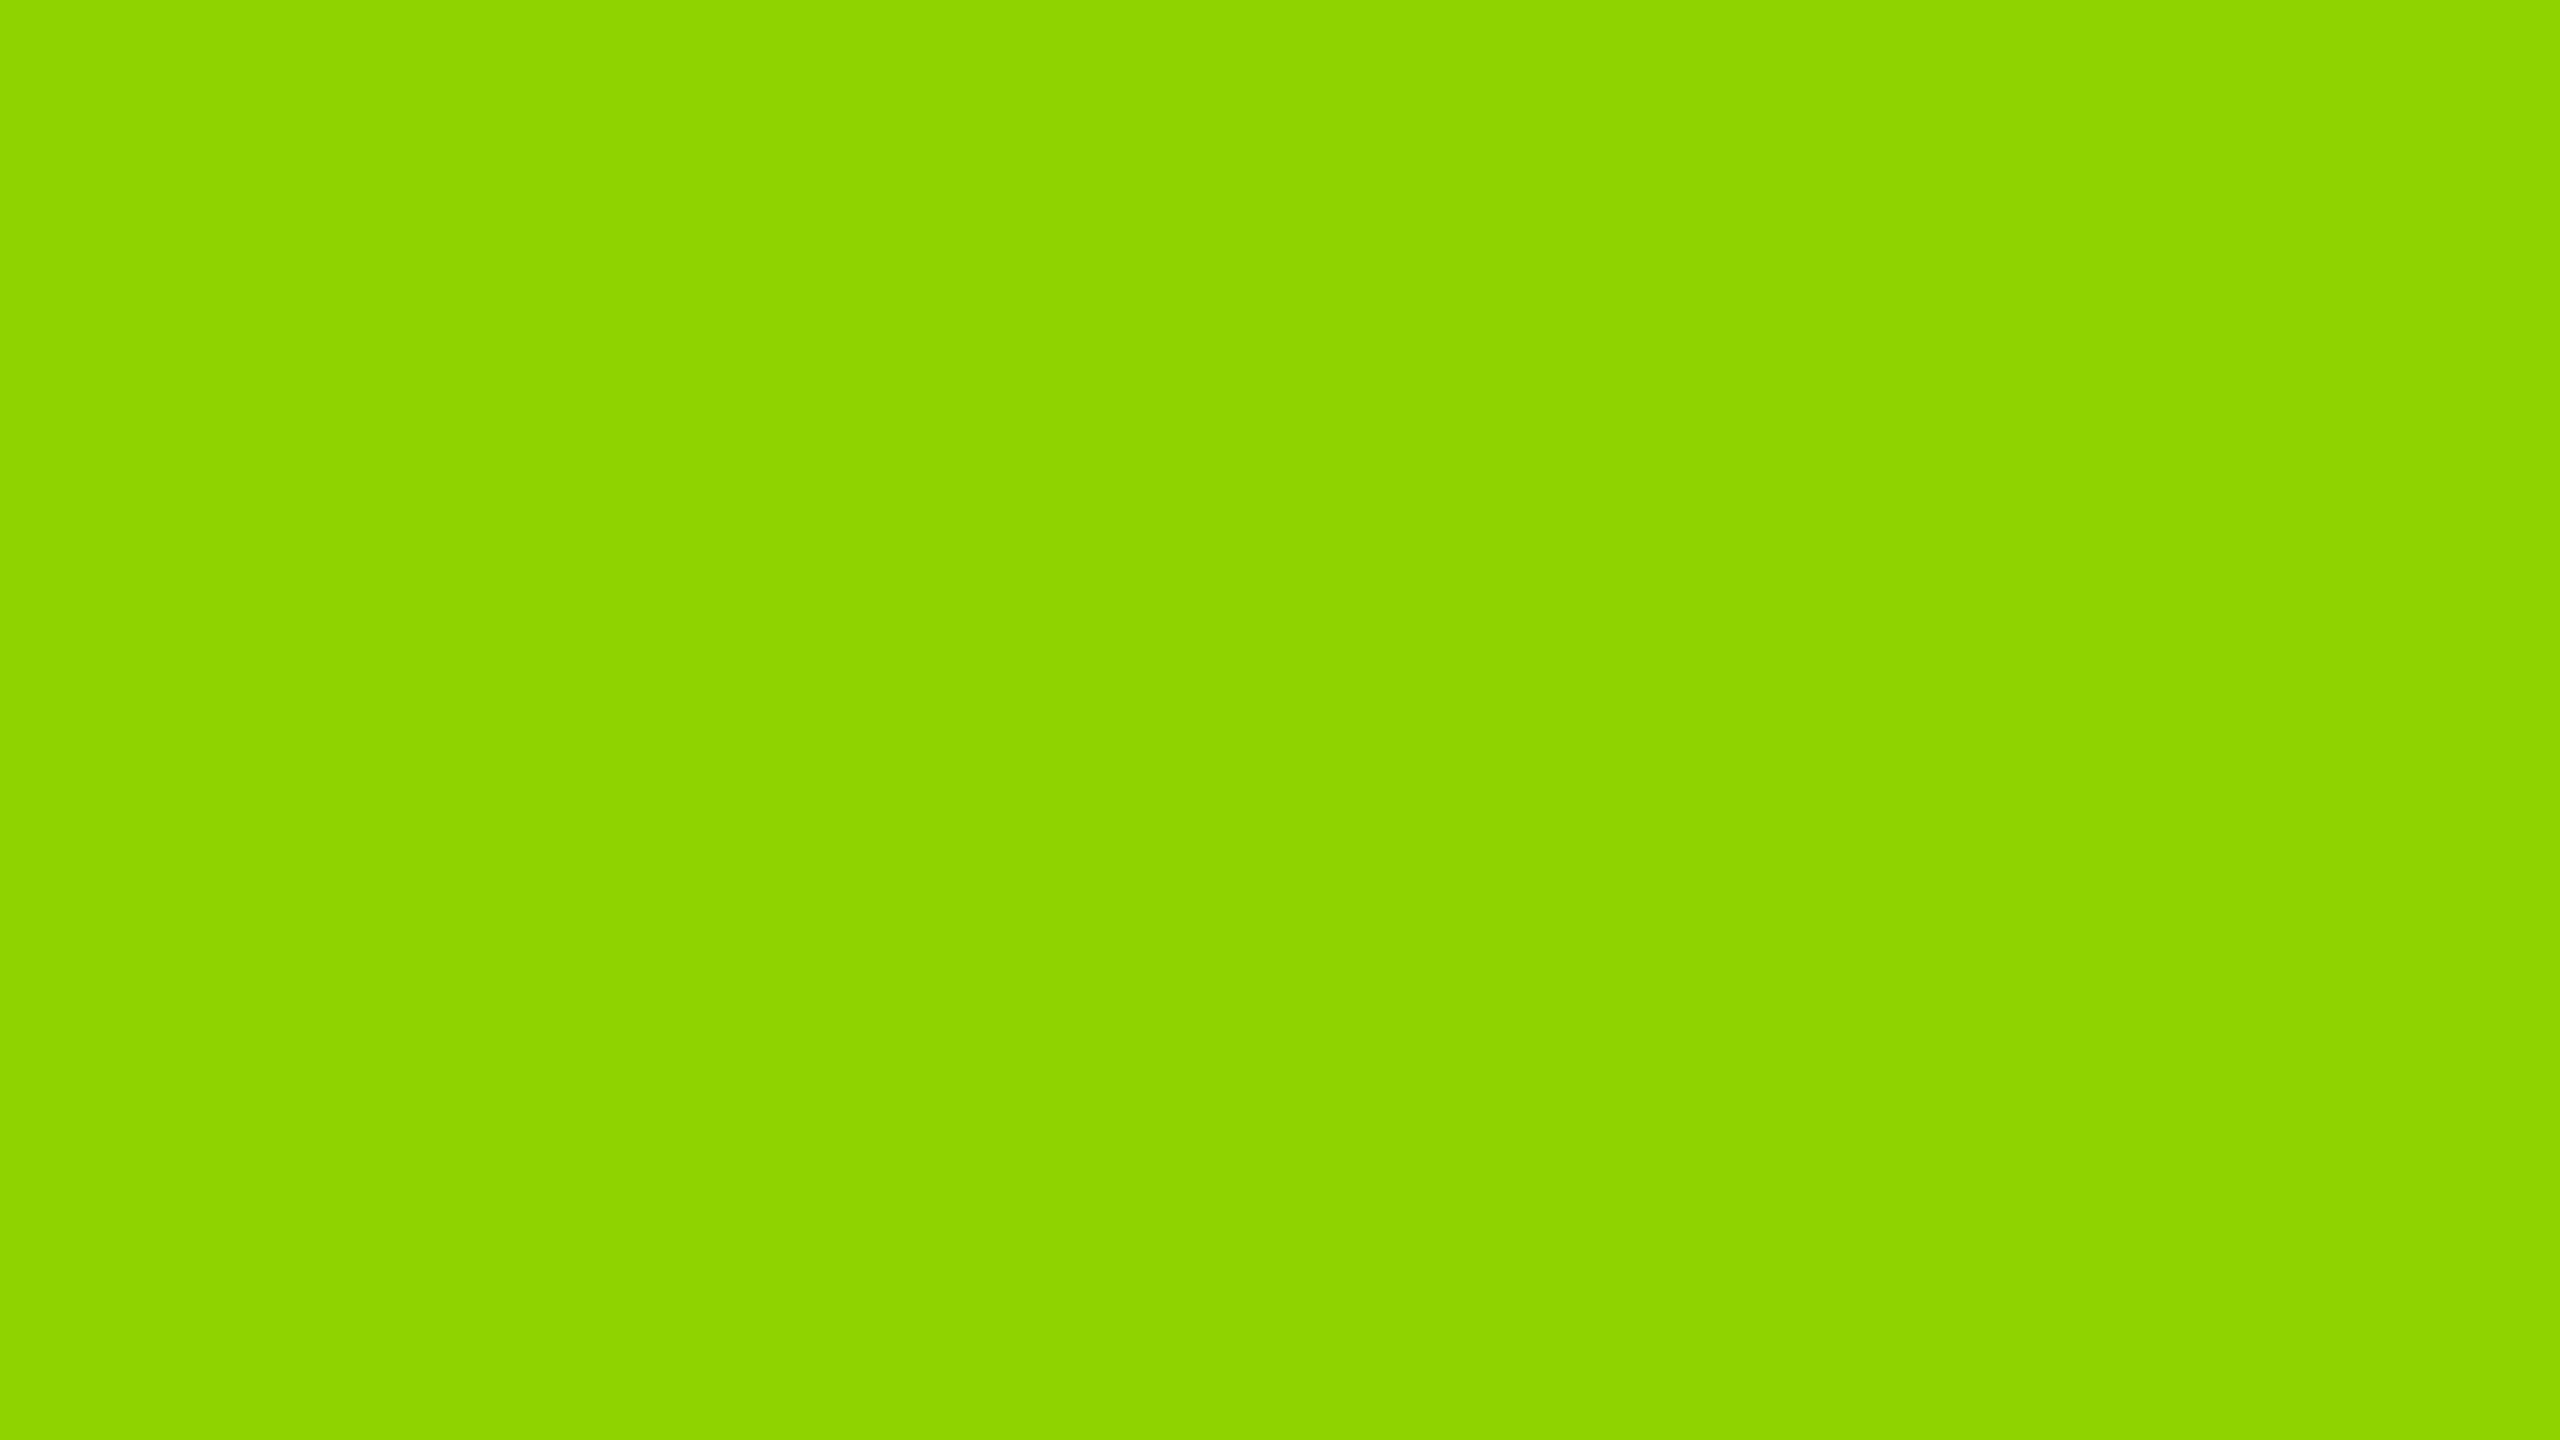 2560x1440 Sheen Green Solid Color Background